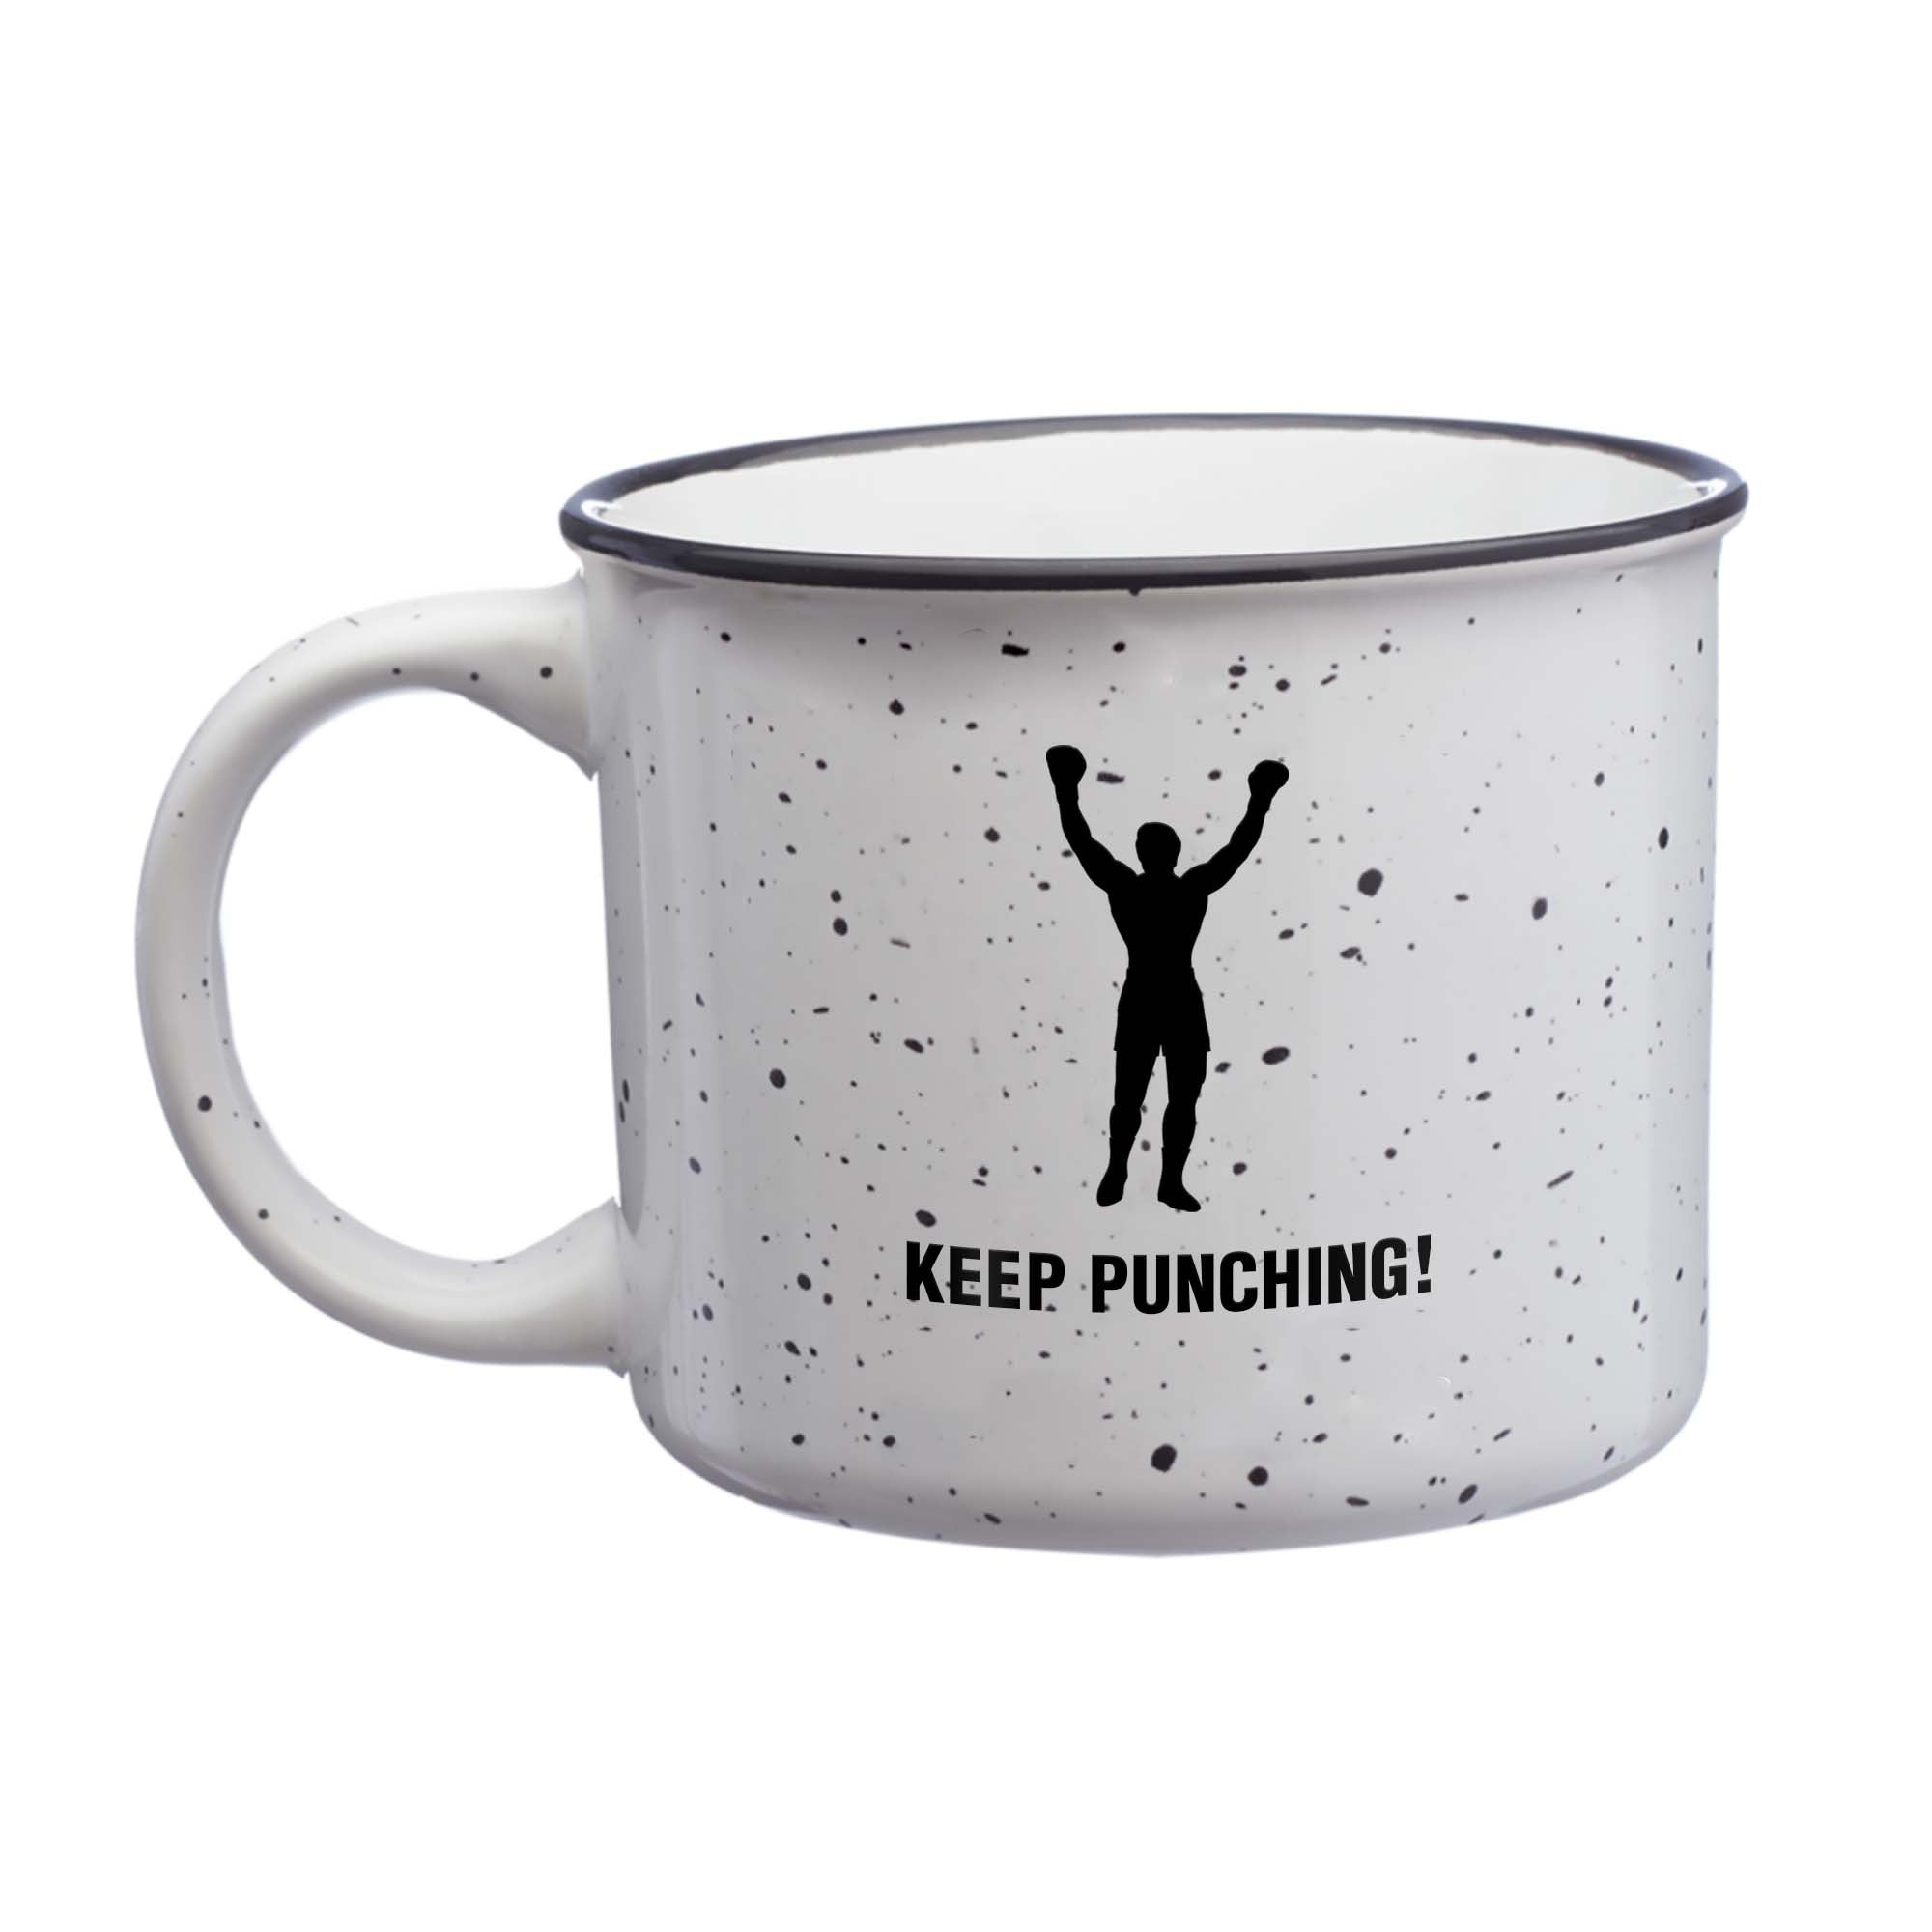 KEEP PUNCHING! White Ceramic Coffee Mug